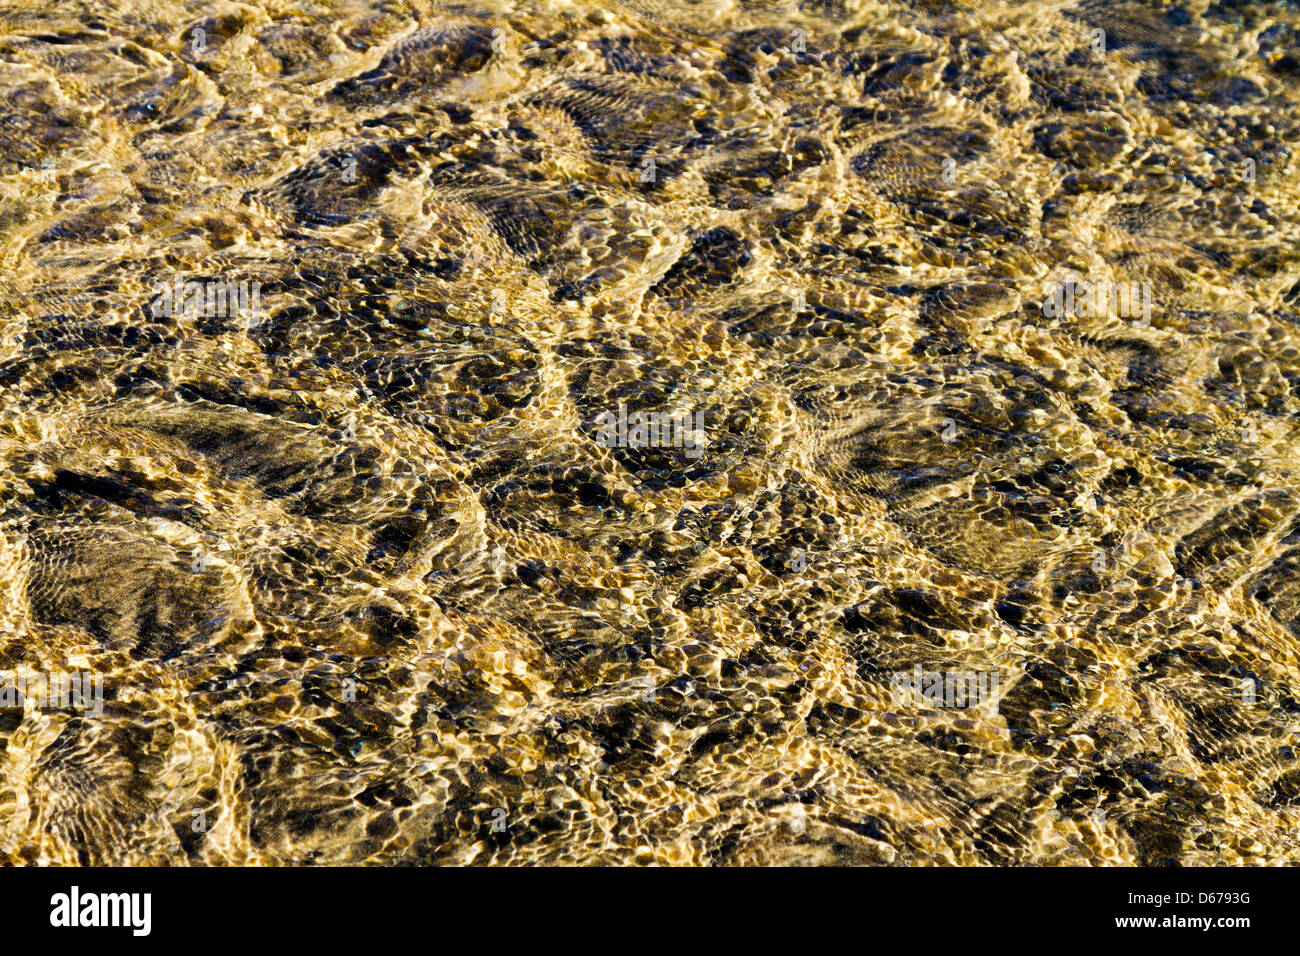 Water rippling over sand in a shallow creek bed forming artistic patterns. - Stock Image